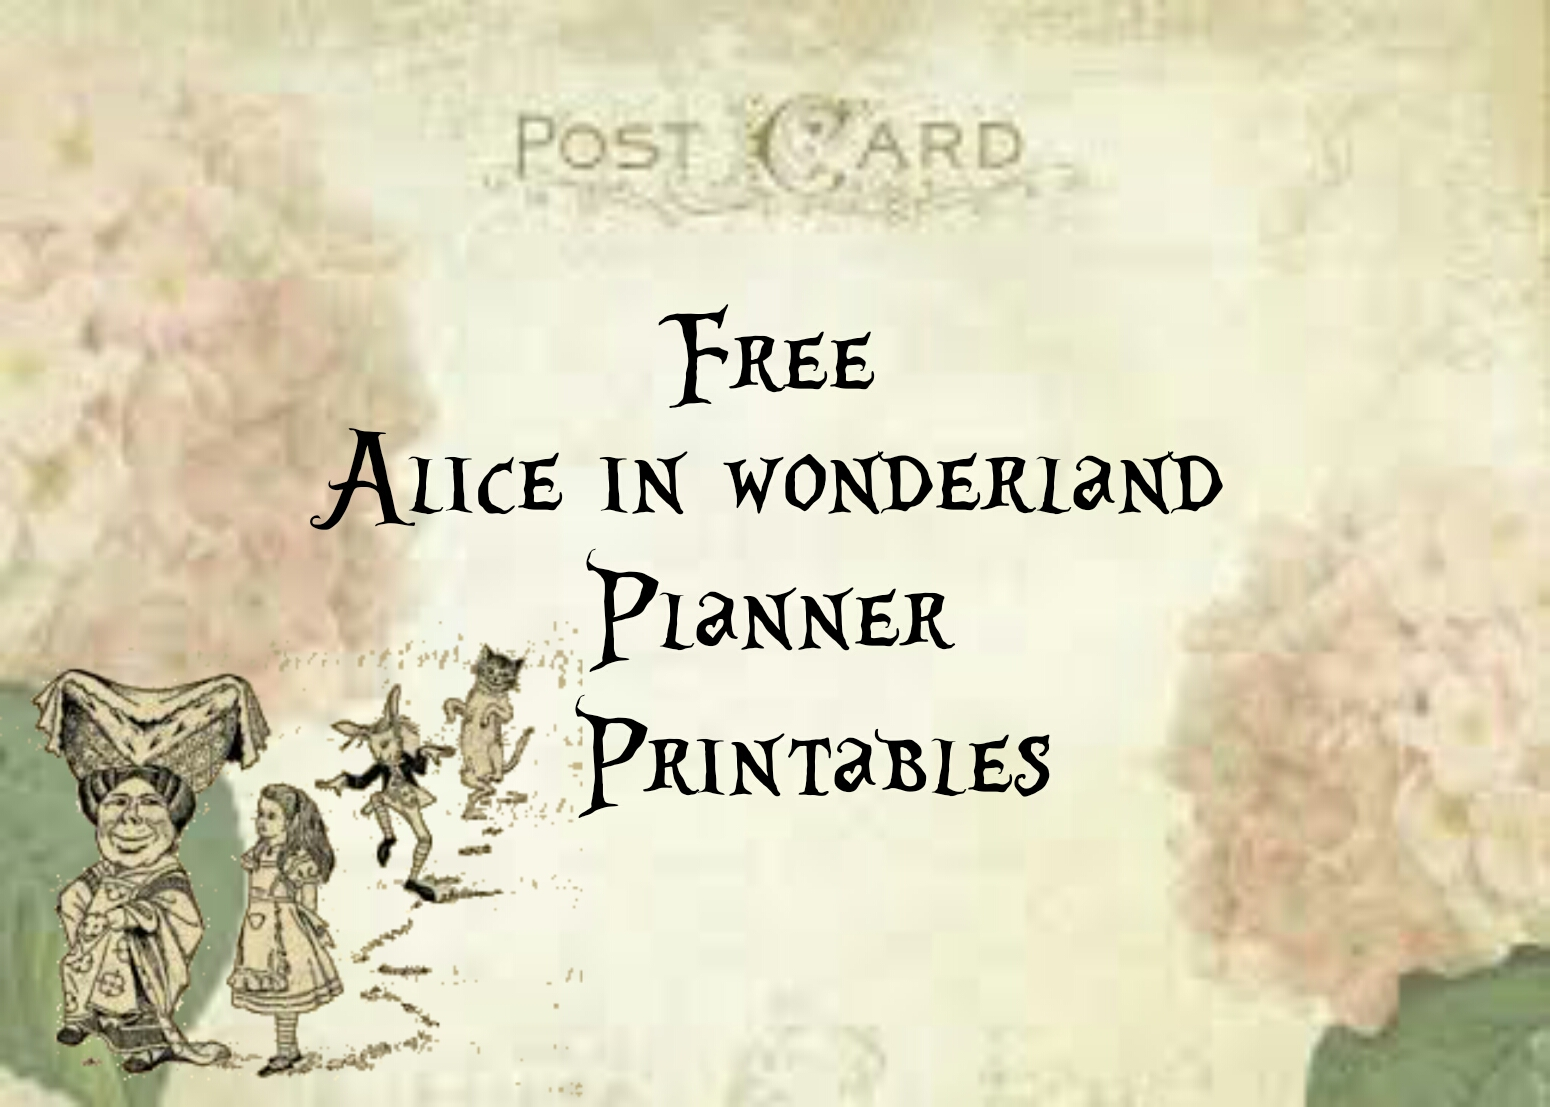 graphic relating to Alice in Wonderland Printable called Alice inside Wonderland : Cost-free Planner Printables Lorraine A